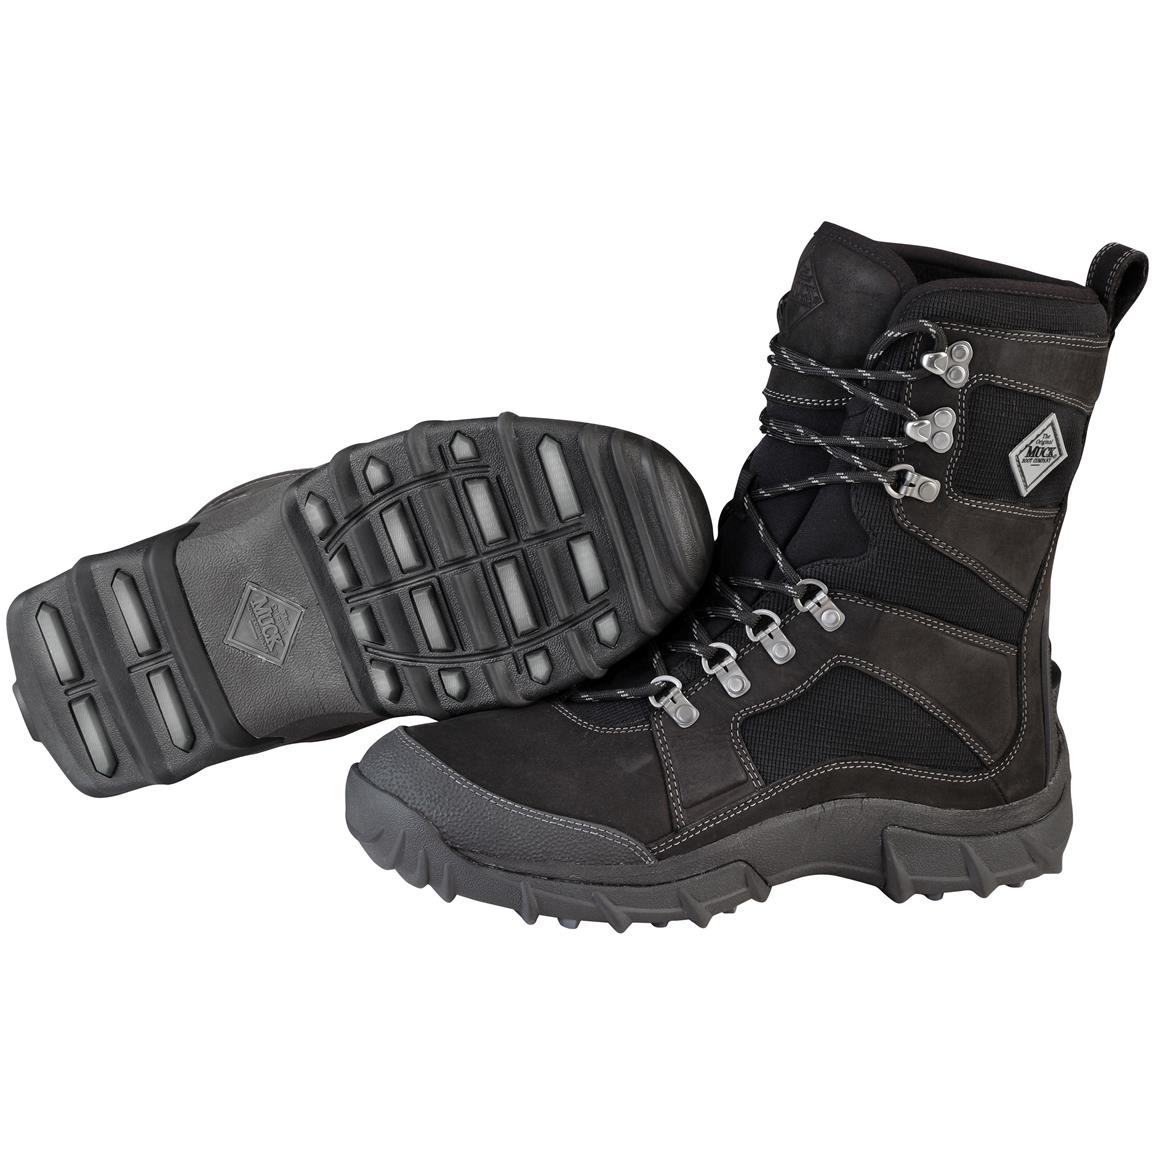 Muck Boots® Peak Essential Boots, Black / Charcoal